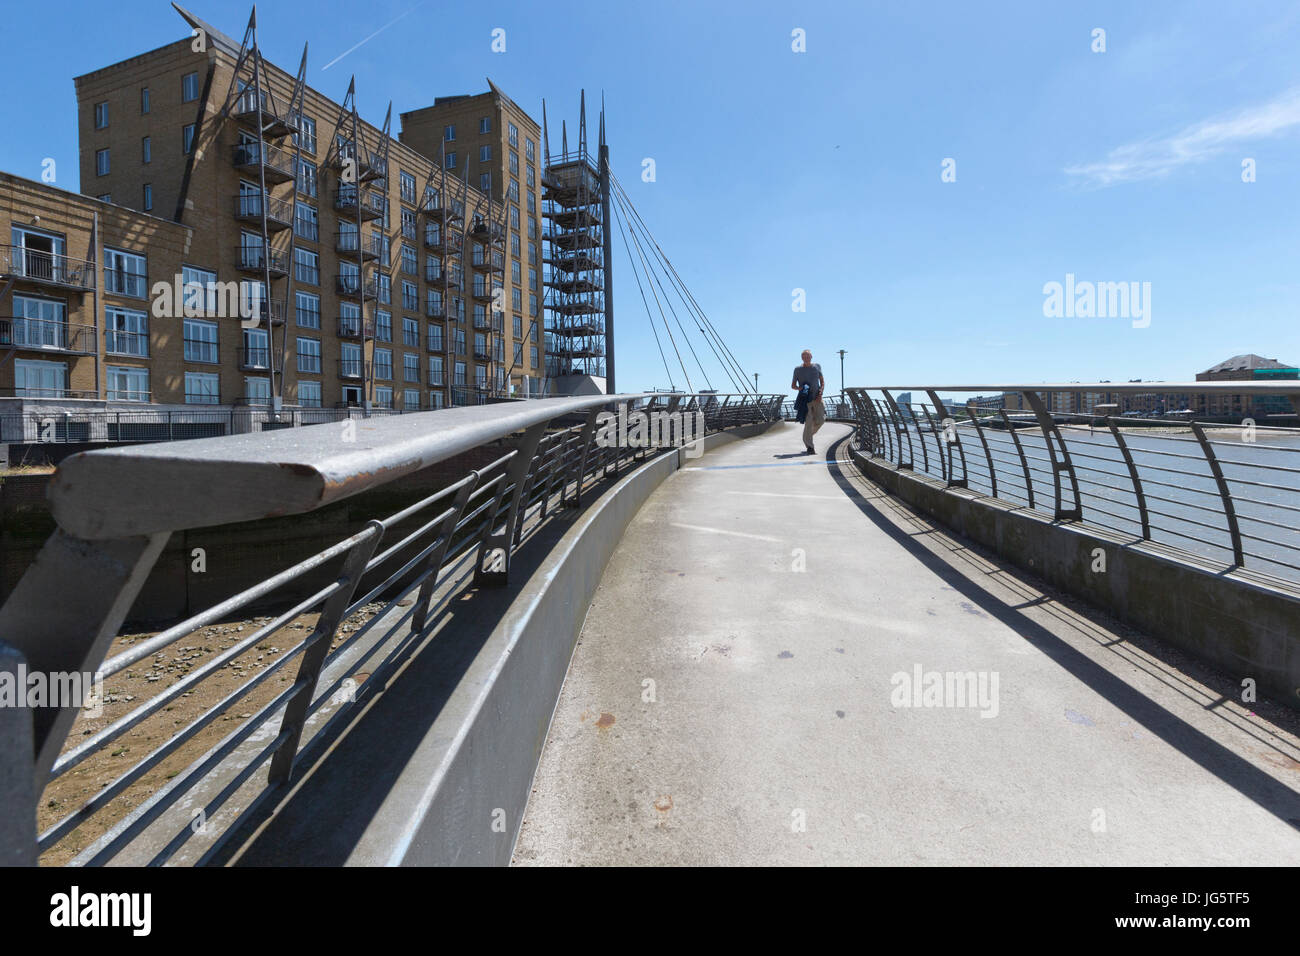 Pedestrian bridge over an inlet of the river Thames, Narrow Street, Limehouse, Tower Hamlets, London, UK - Stock Image